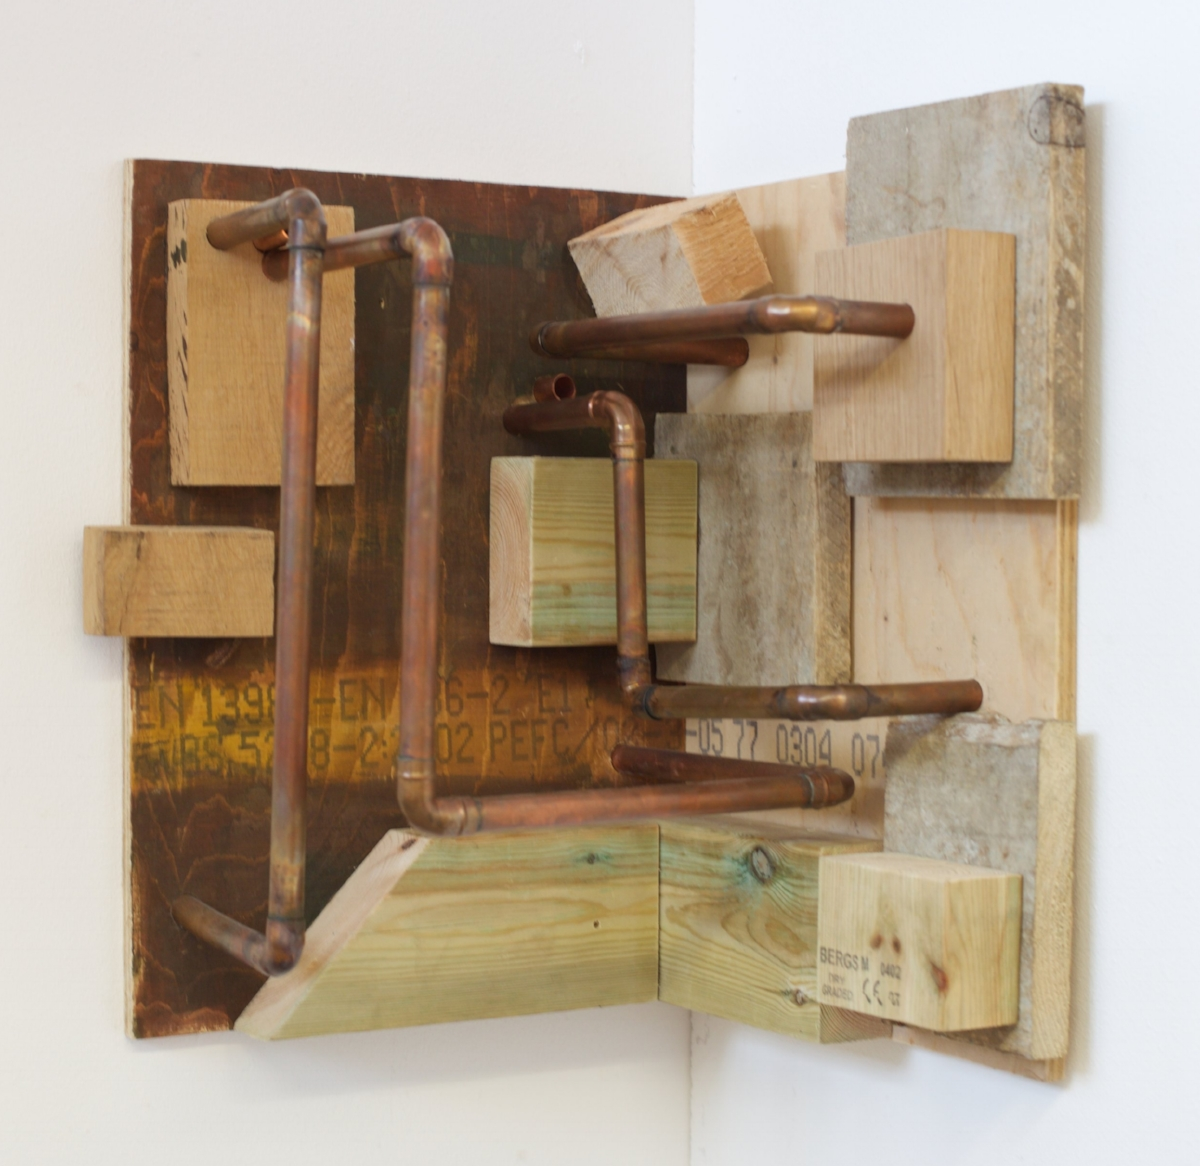 Jack Van Leuwen : Scavenging, Constructing, Creative Growth (HIGHLY COMMENDED)